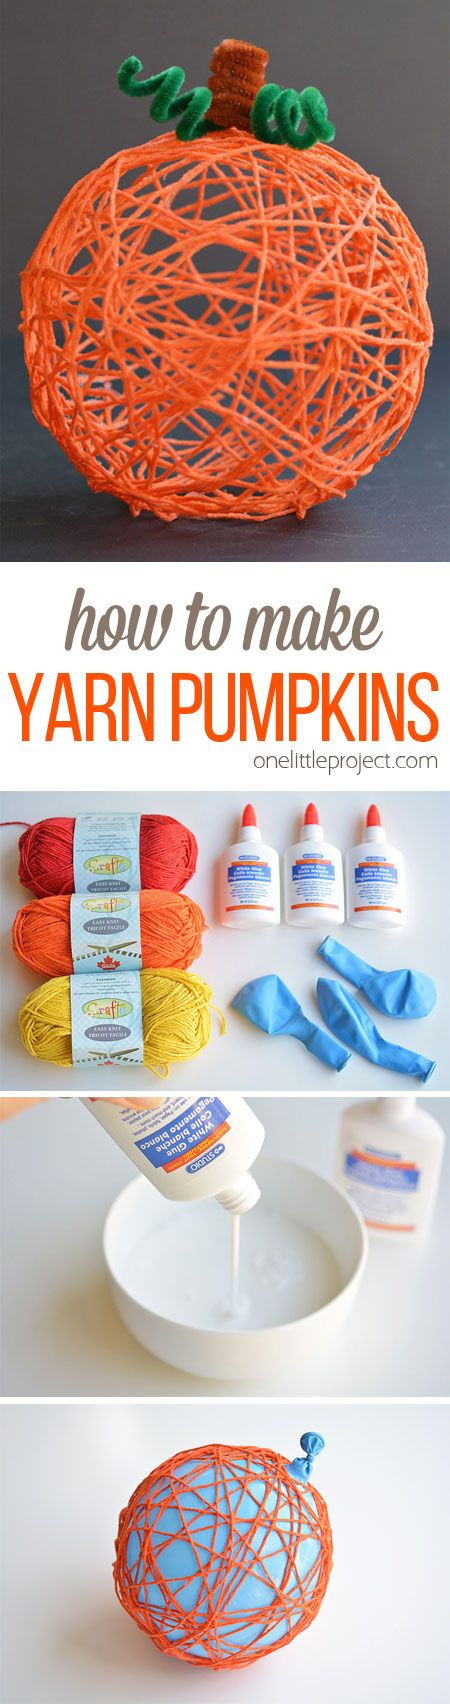 how to make yarn pumpkins using balloons halloween kidshalloween activitieshalloween projectsfall - Preschool Halloween Crafts Ideas